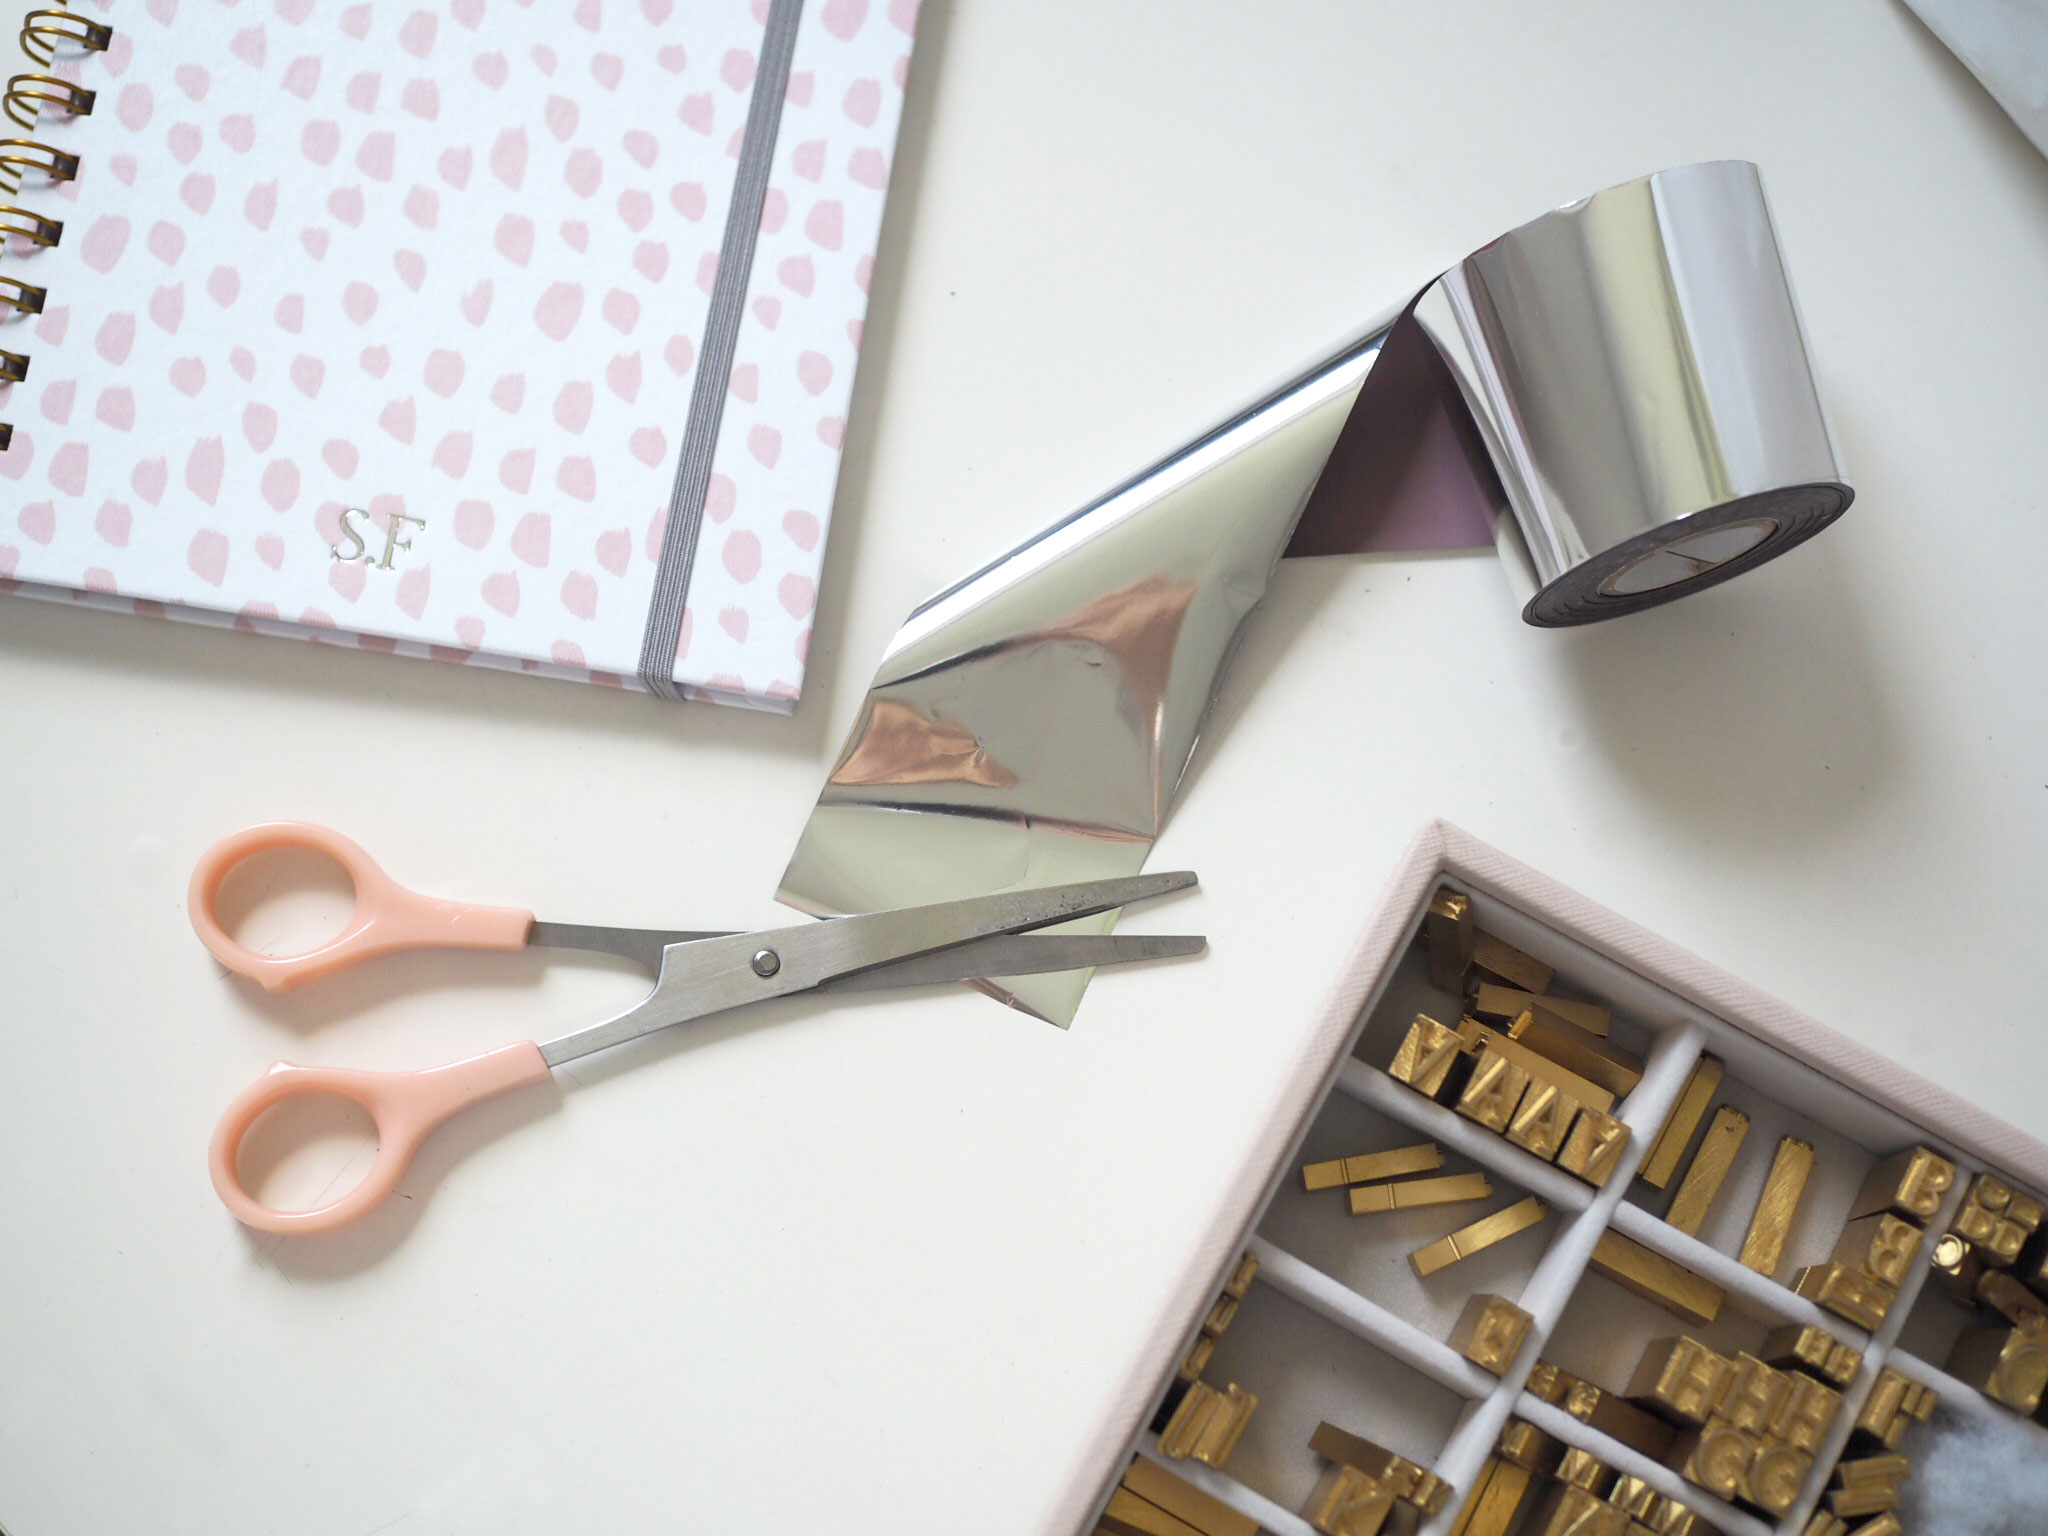 Personalise your stationery with your initials